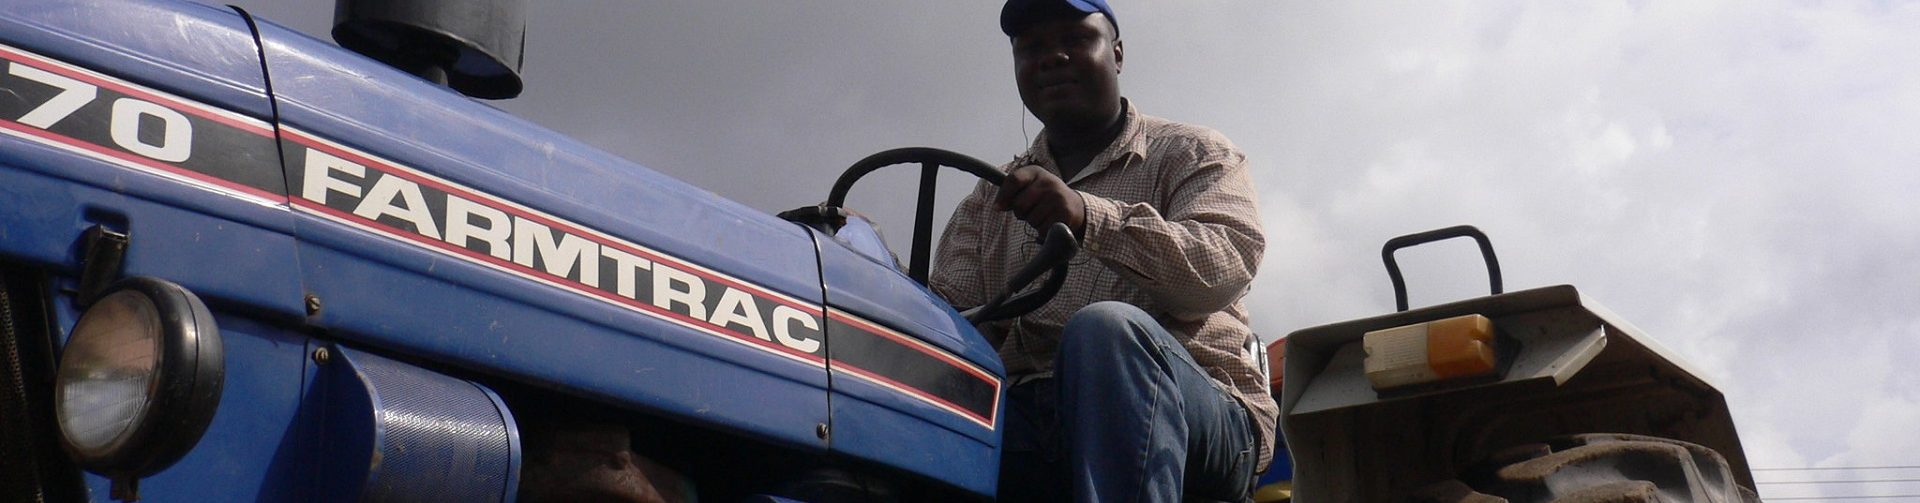 In search of effective support for agricultural mechanization in Africa